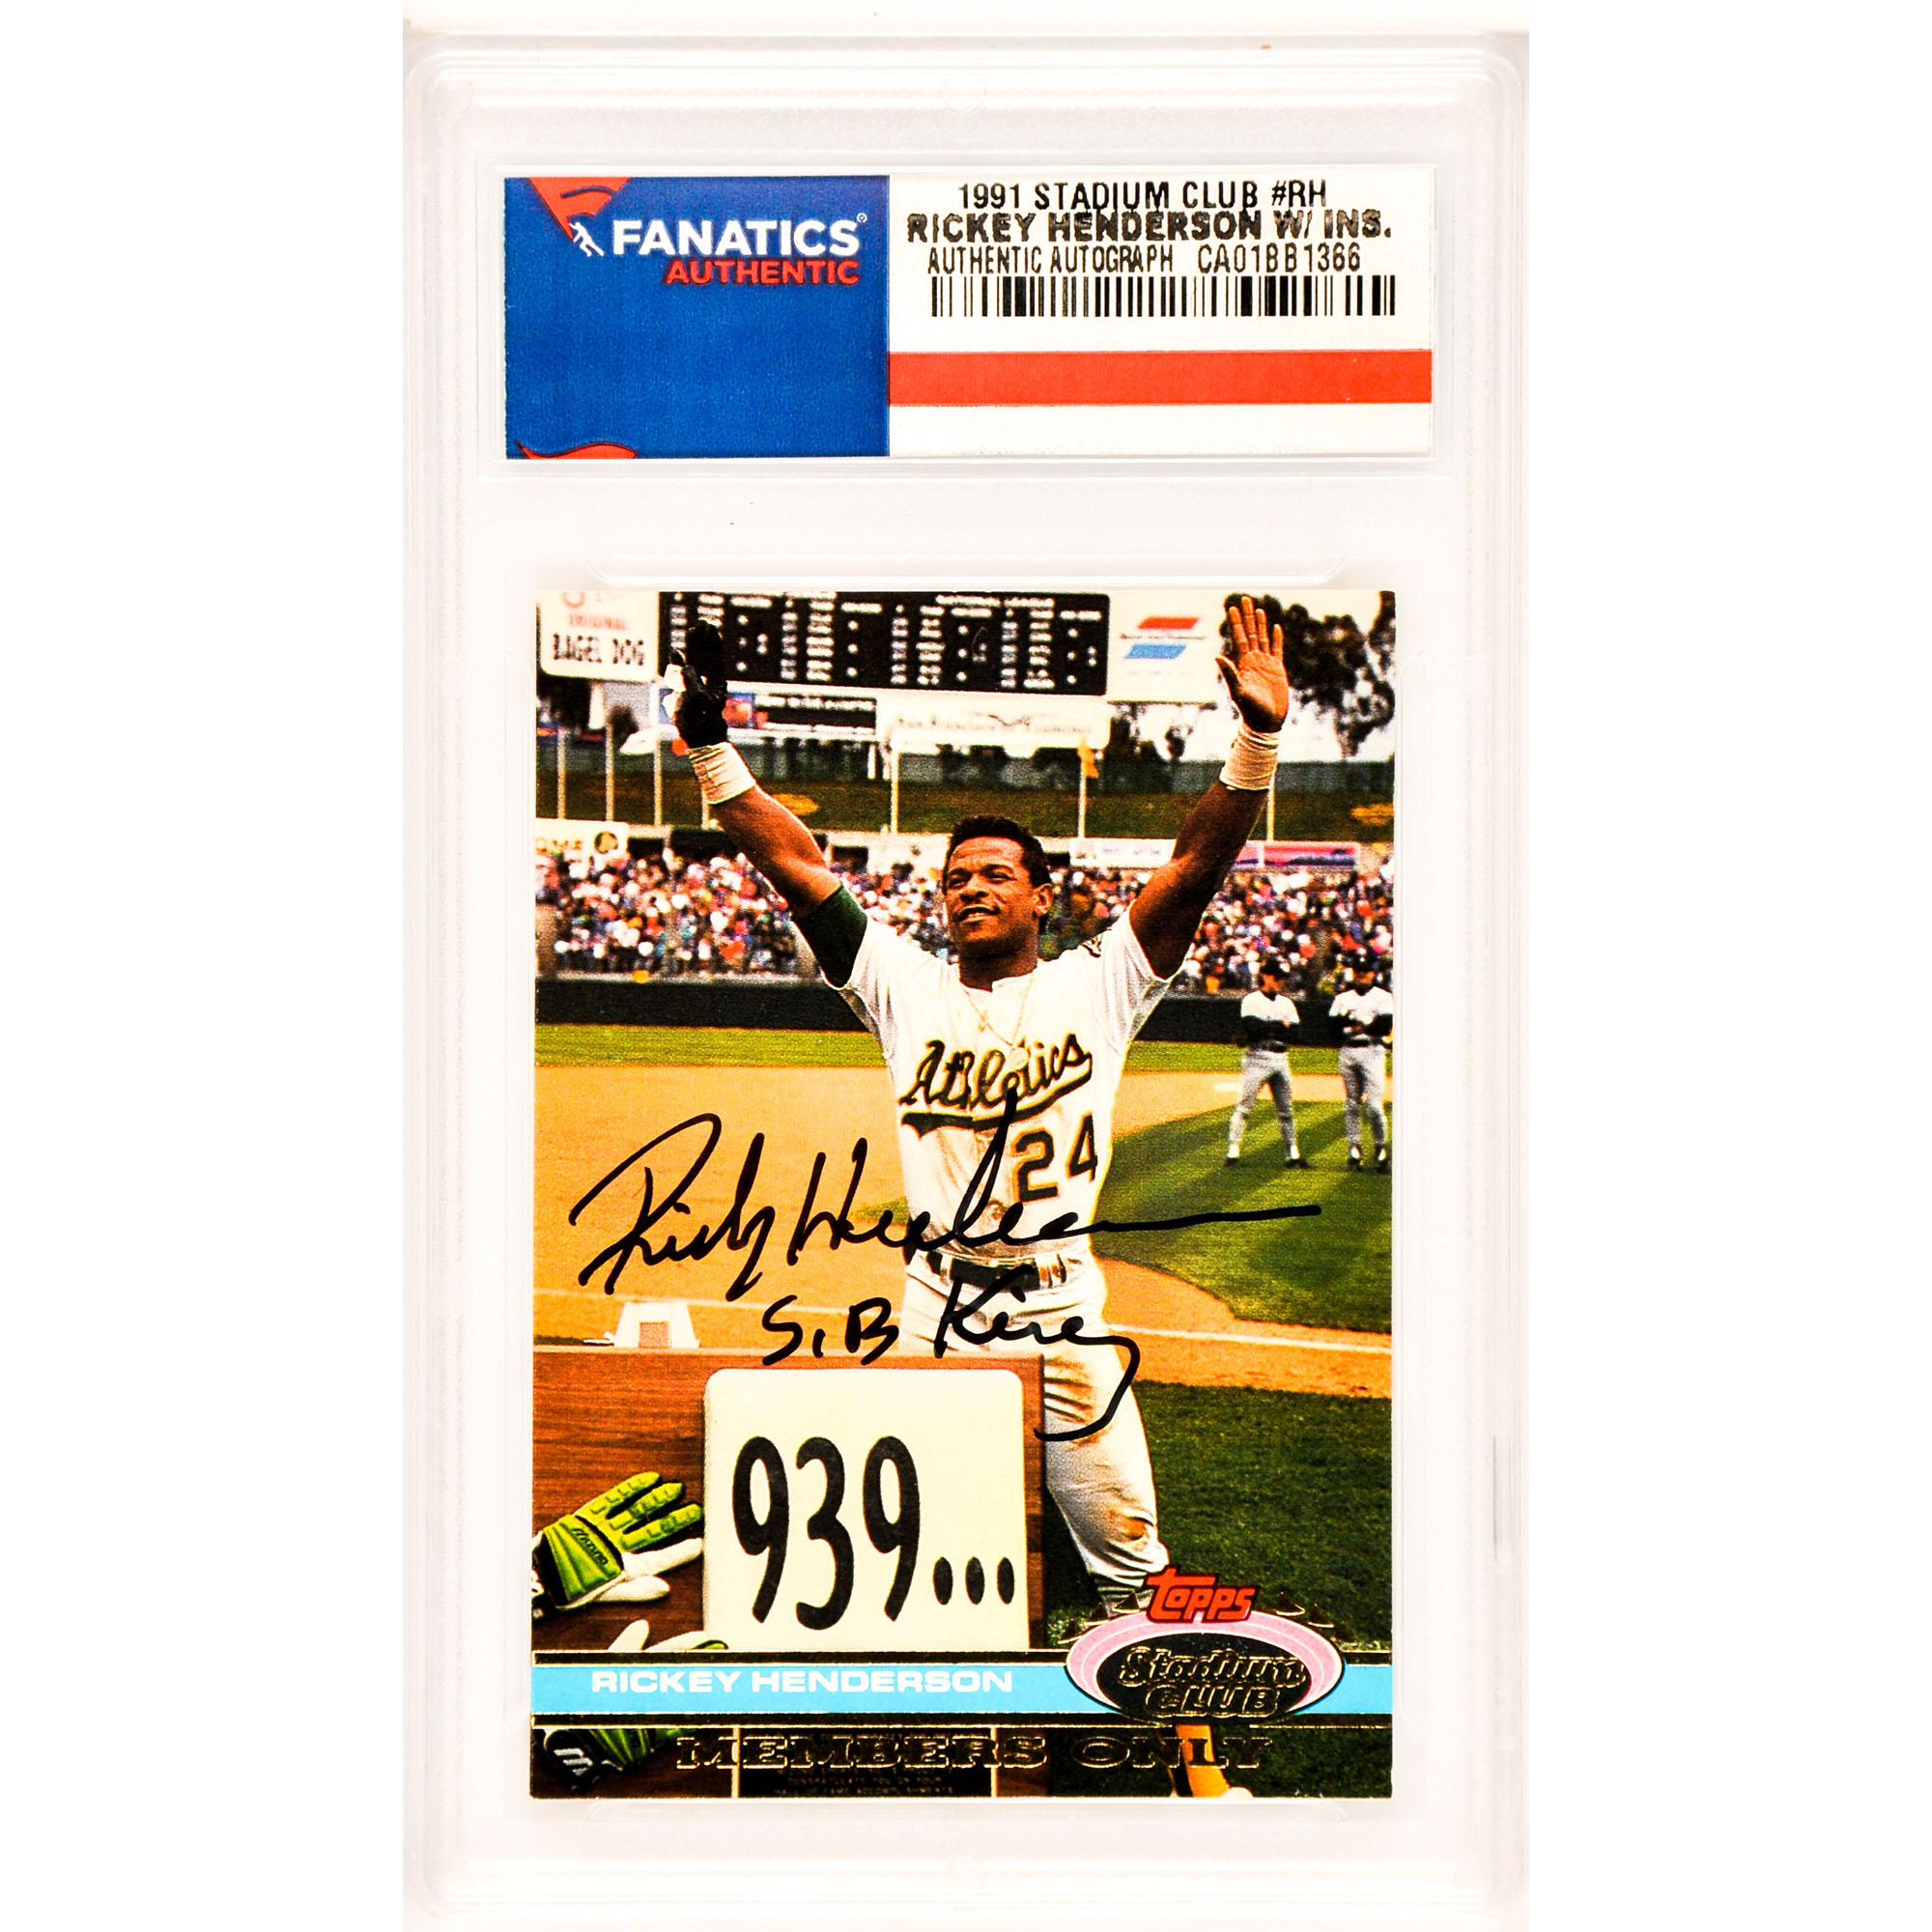 Rickey Henderson Oakland Athletics Fanatics Authentic Autographed 1991 Stadium Club SP #RH Card with SB King Inscription - No Size